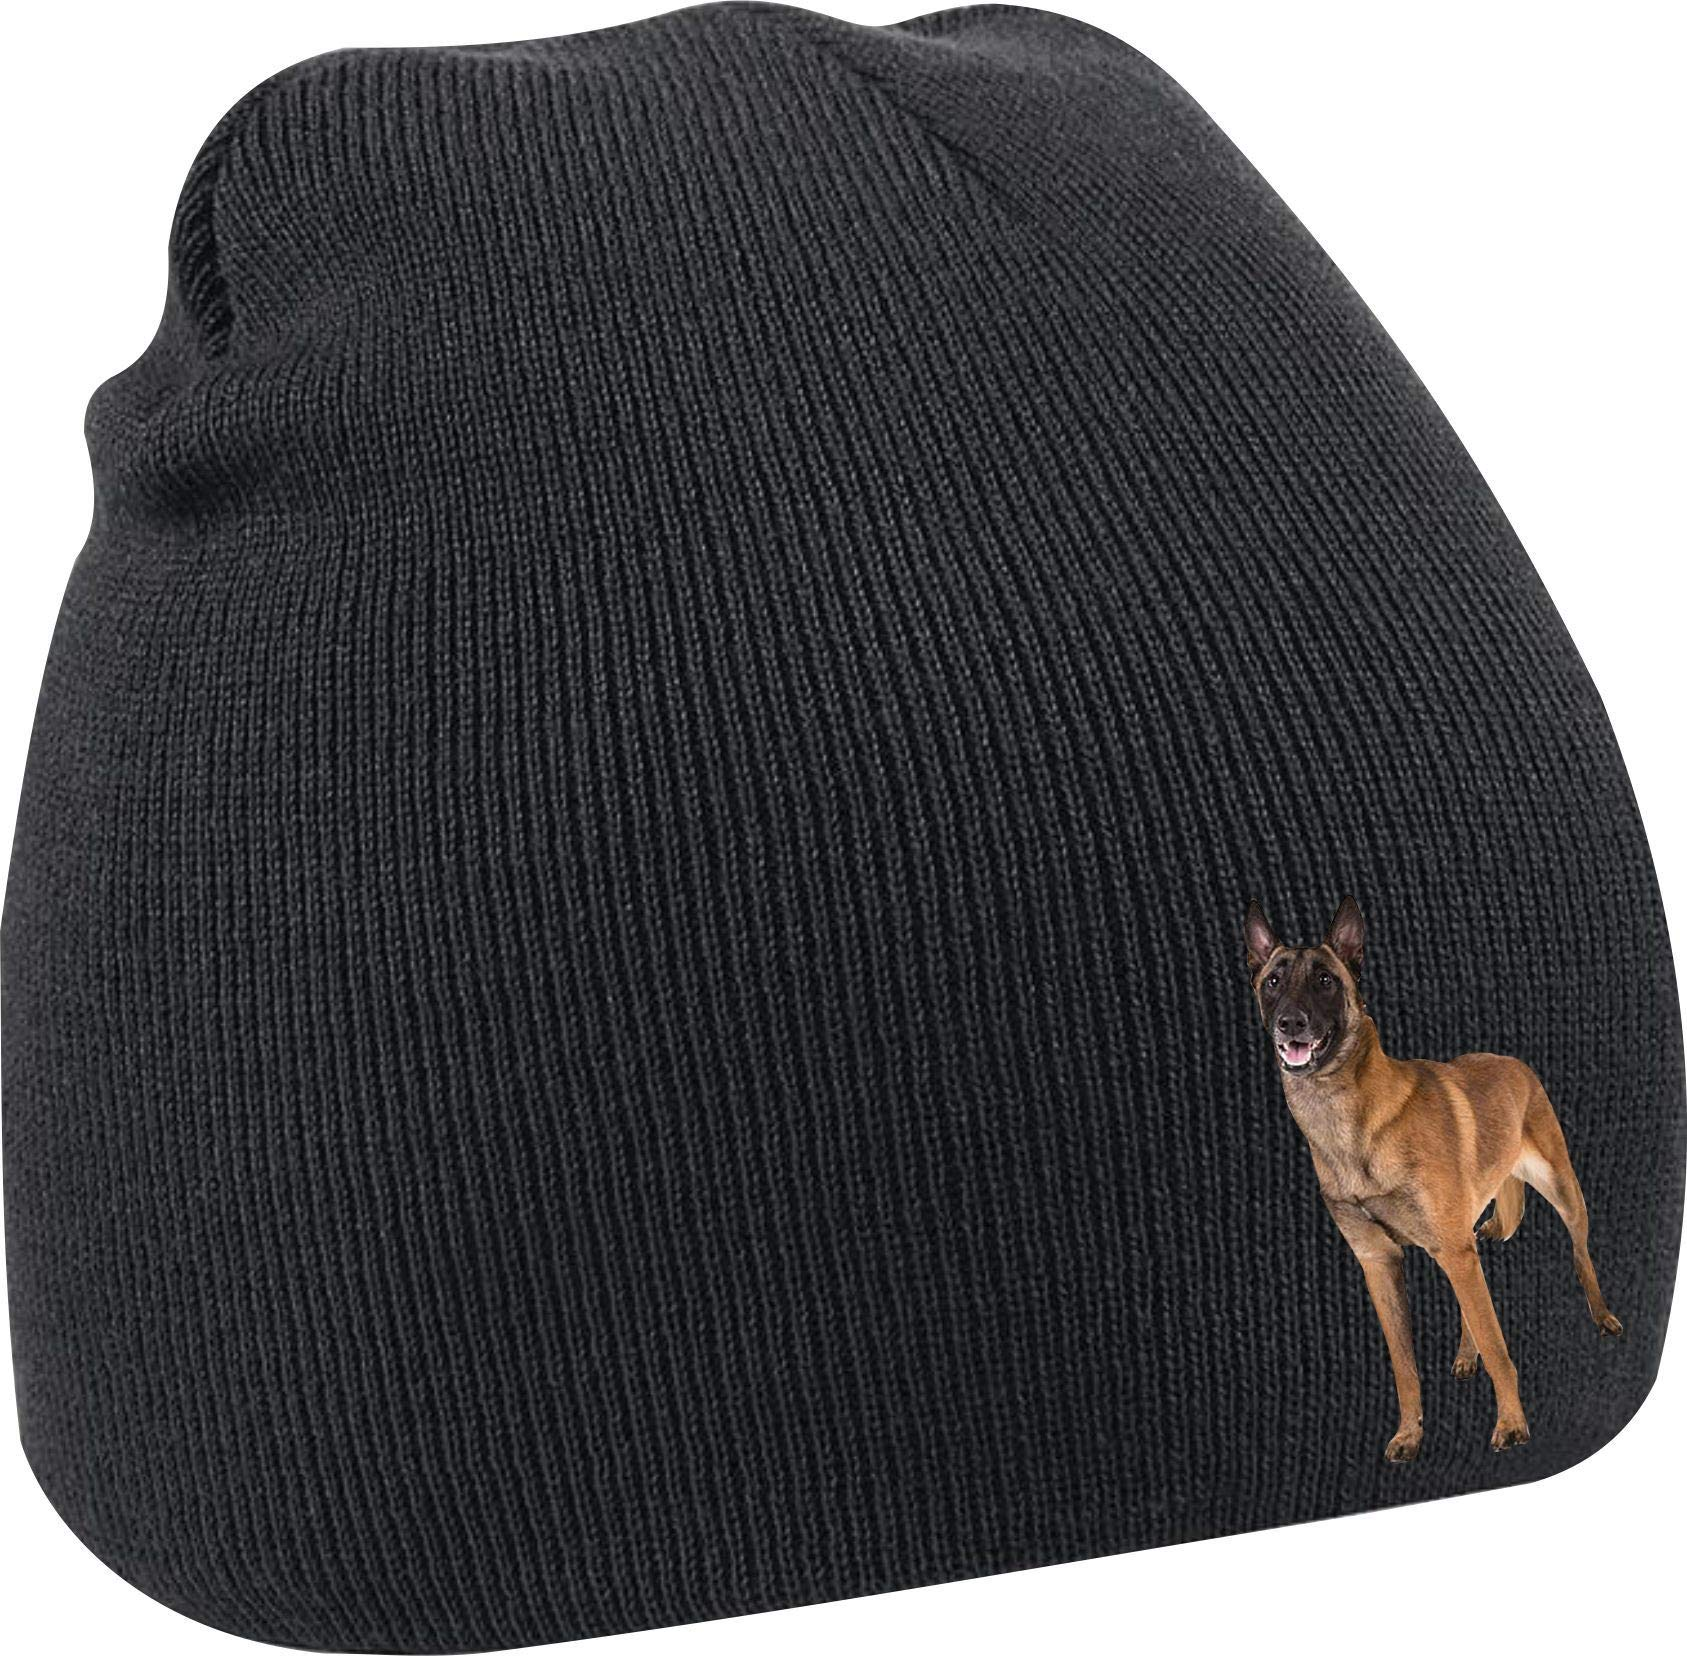 Taurus Clothing Belgian Malinois Dog Personalised Embroidered Beanie Black